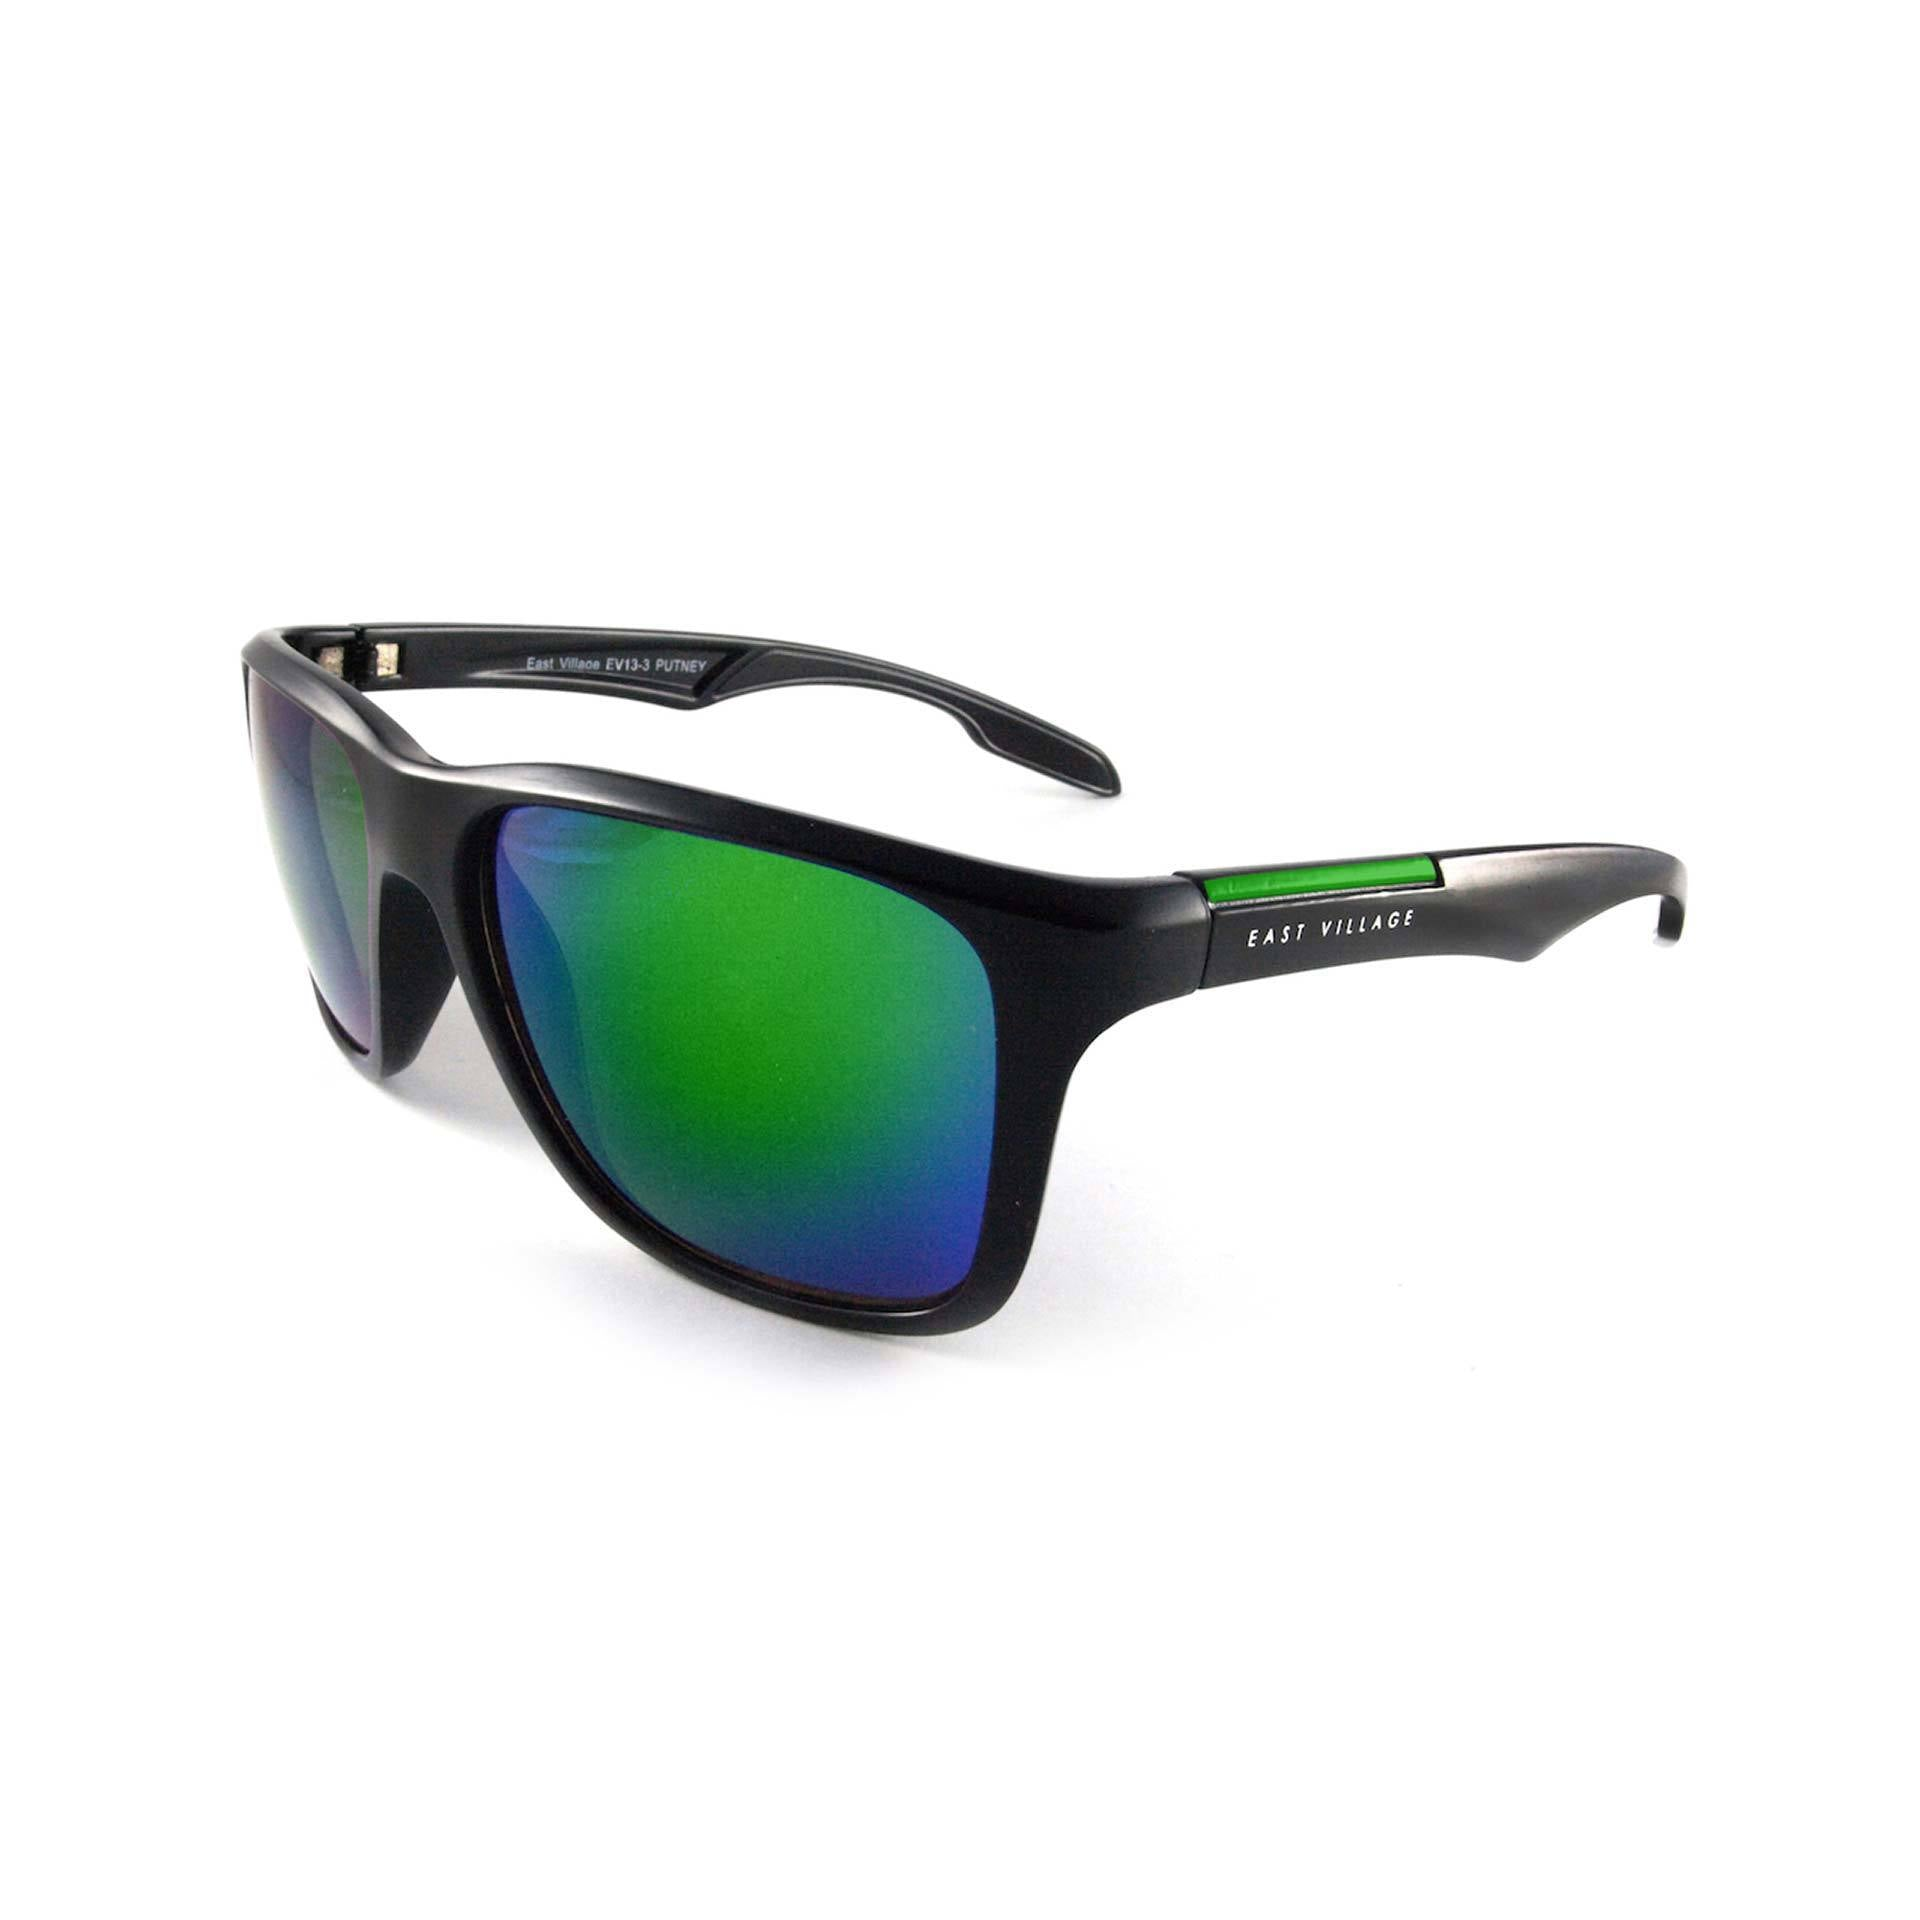 East Village Sporty Putney Square Black Sunglasses with Green Revo Lens